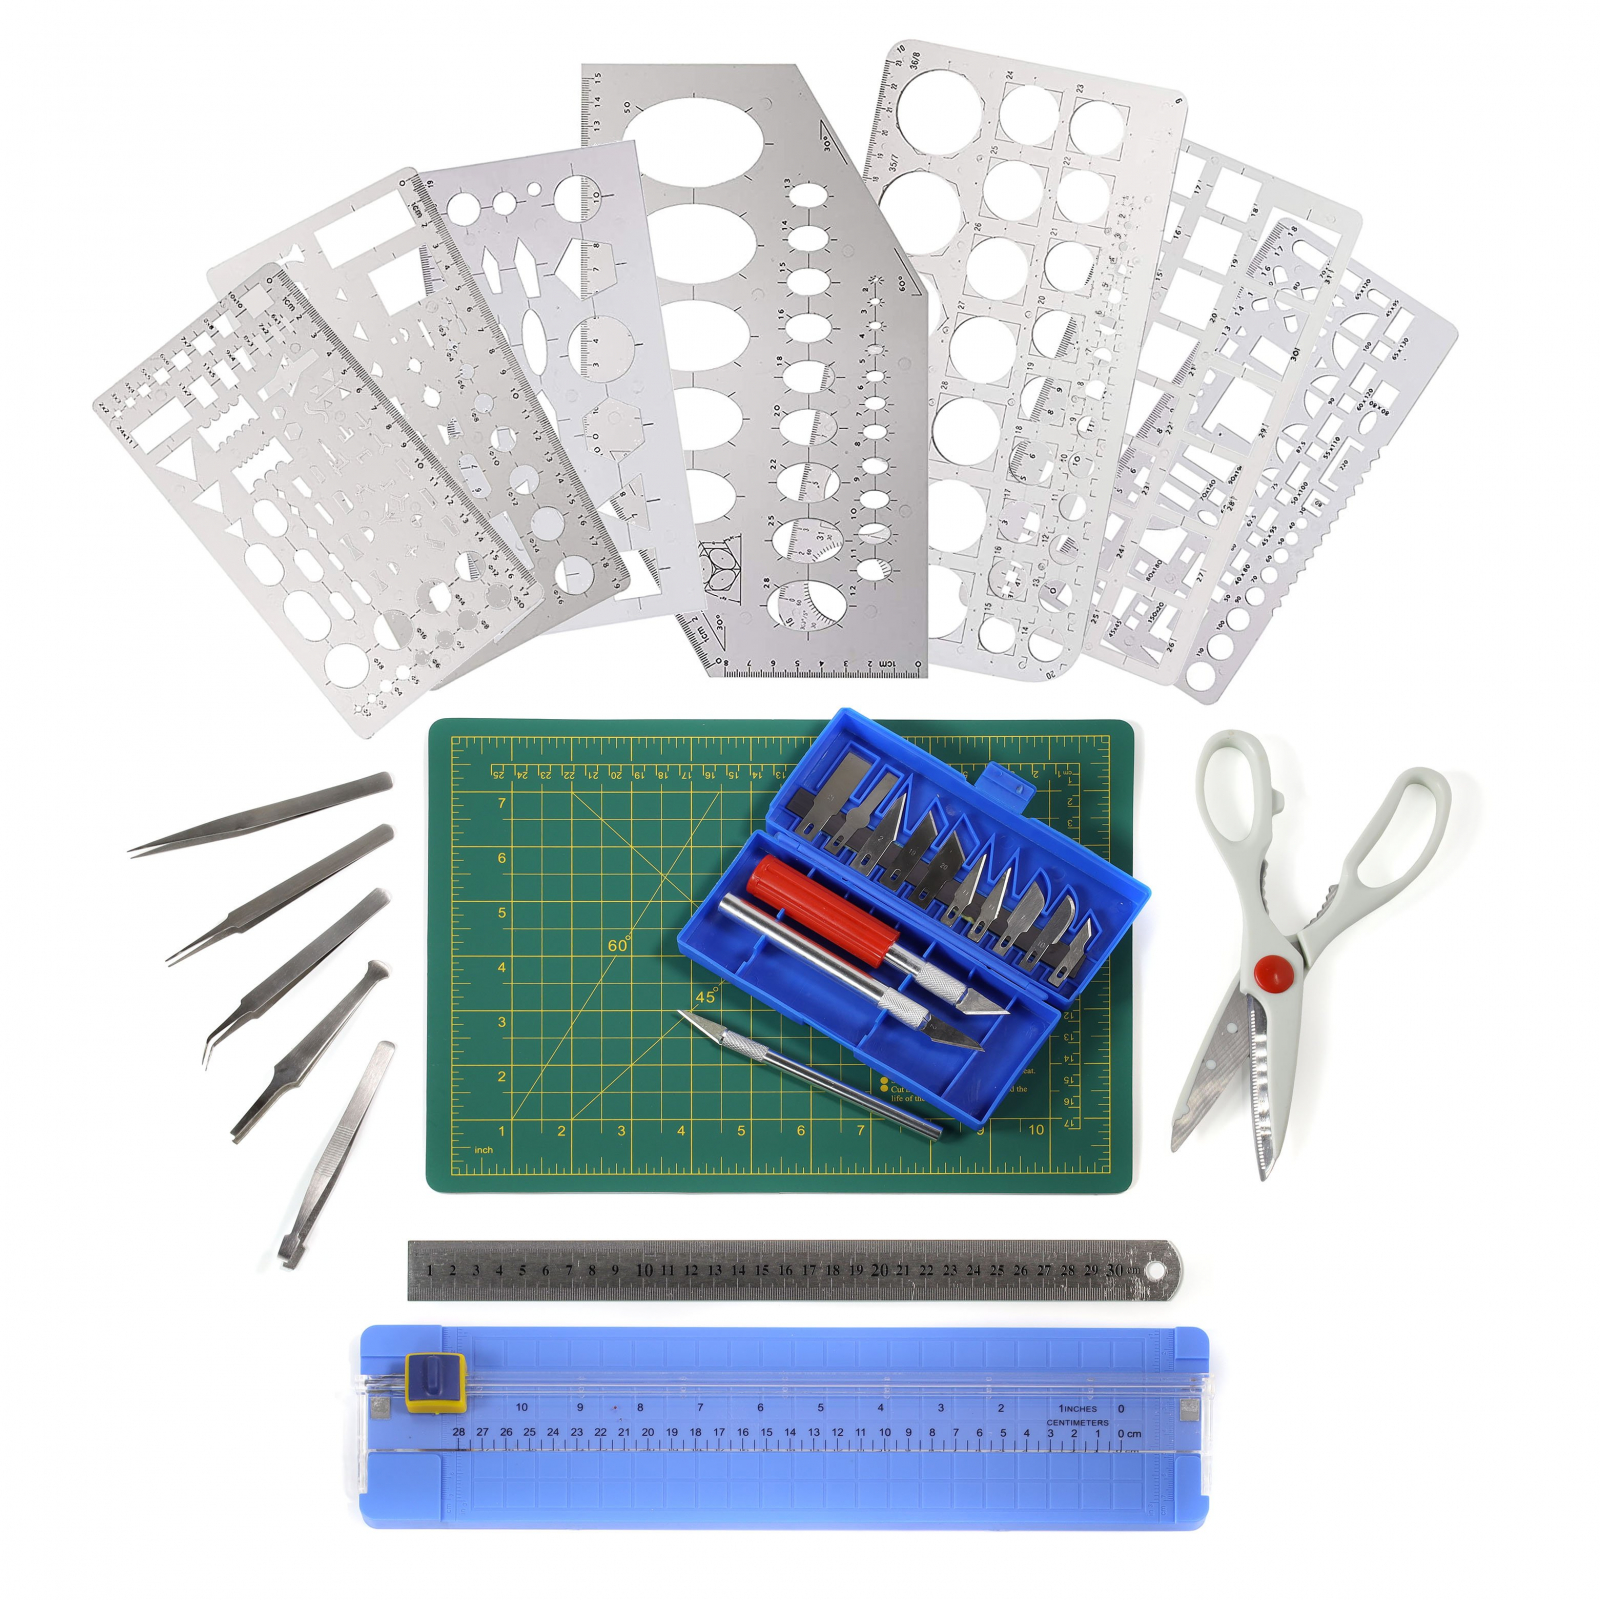 ToolTreaux Stationery Scrapbooking Set Crafts Kit 26pc